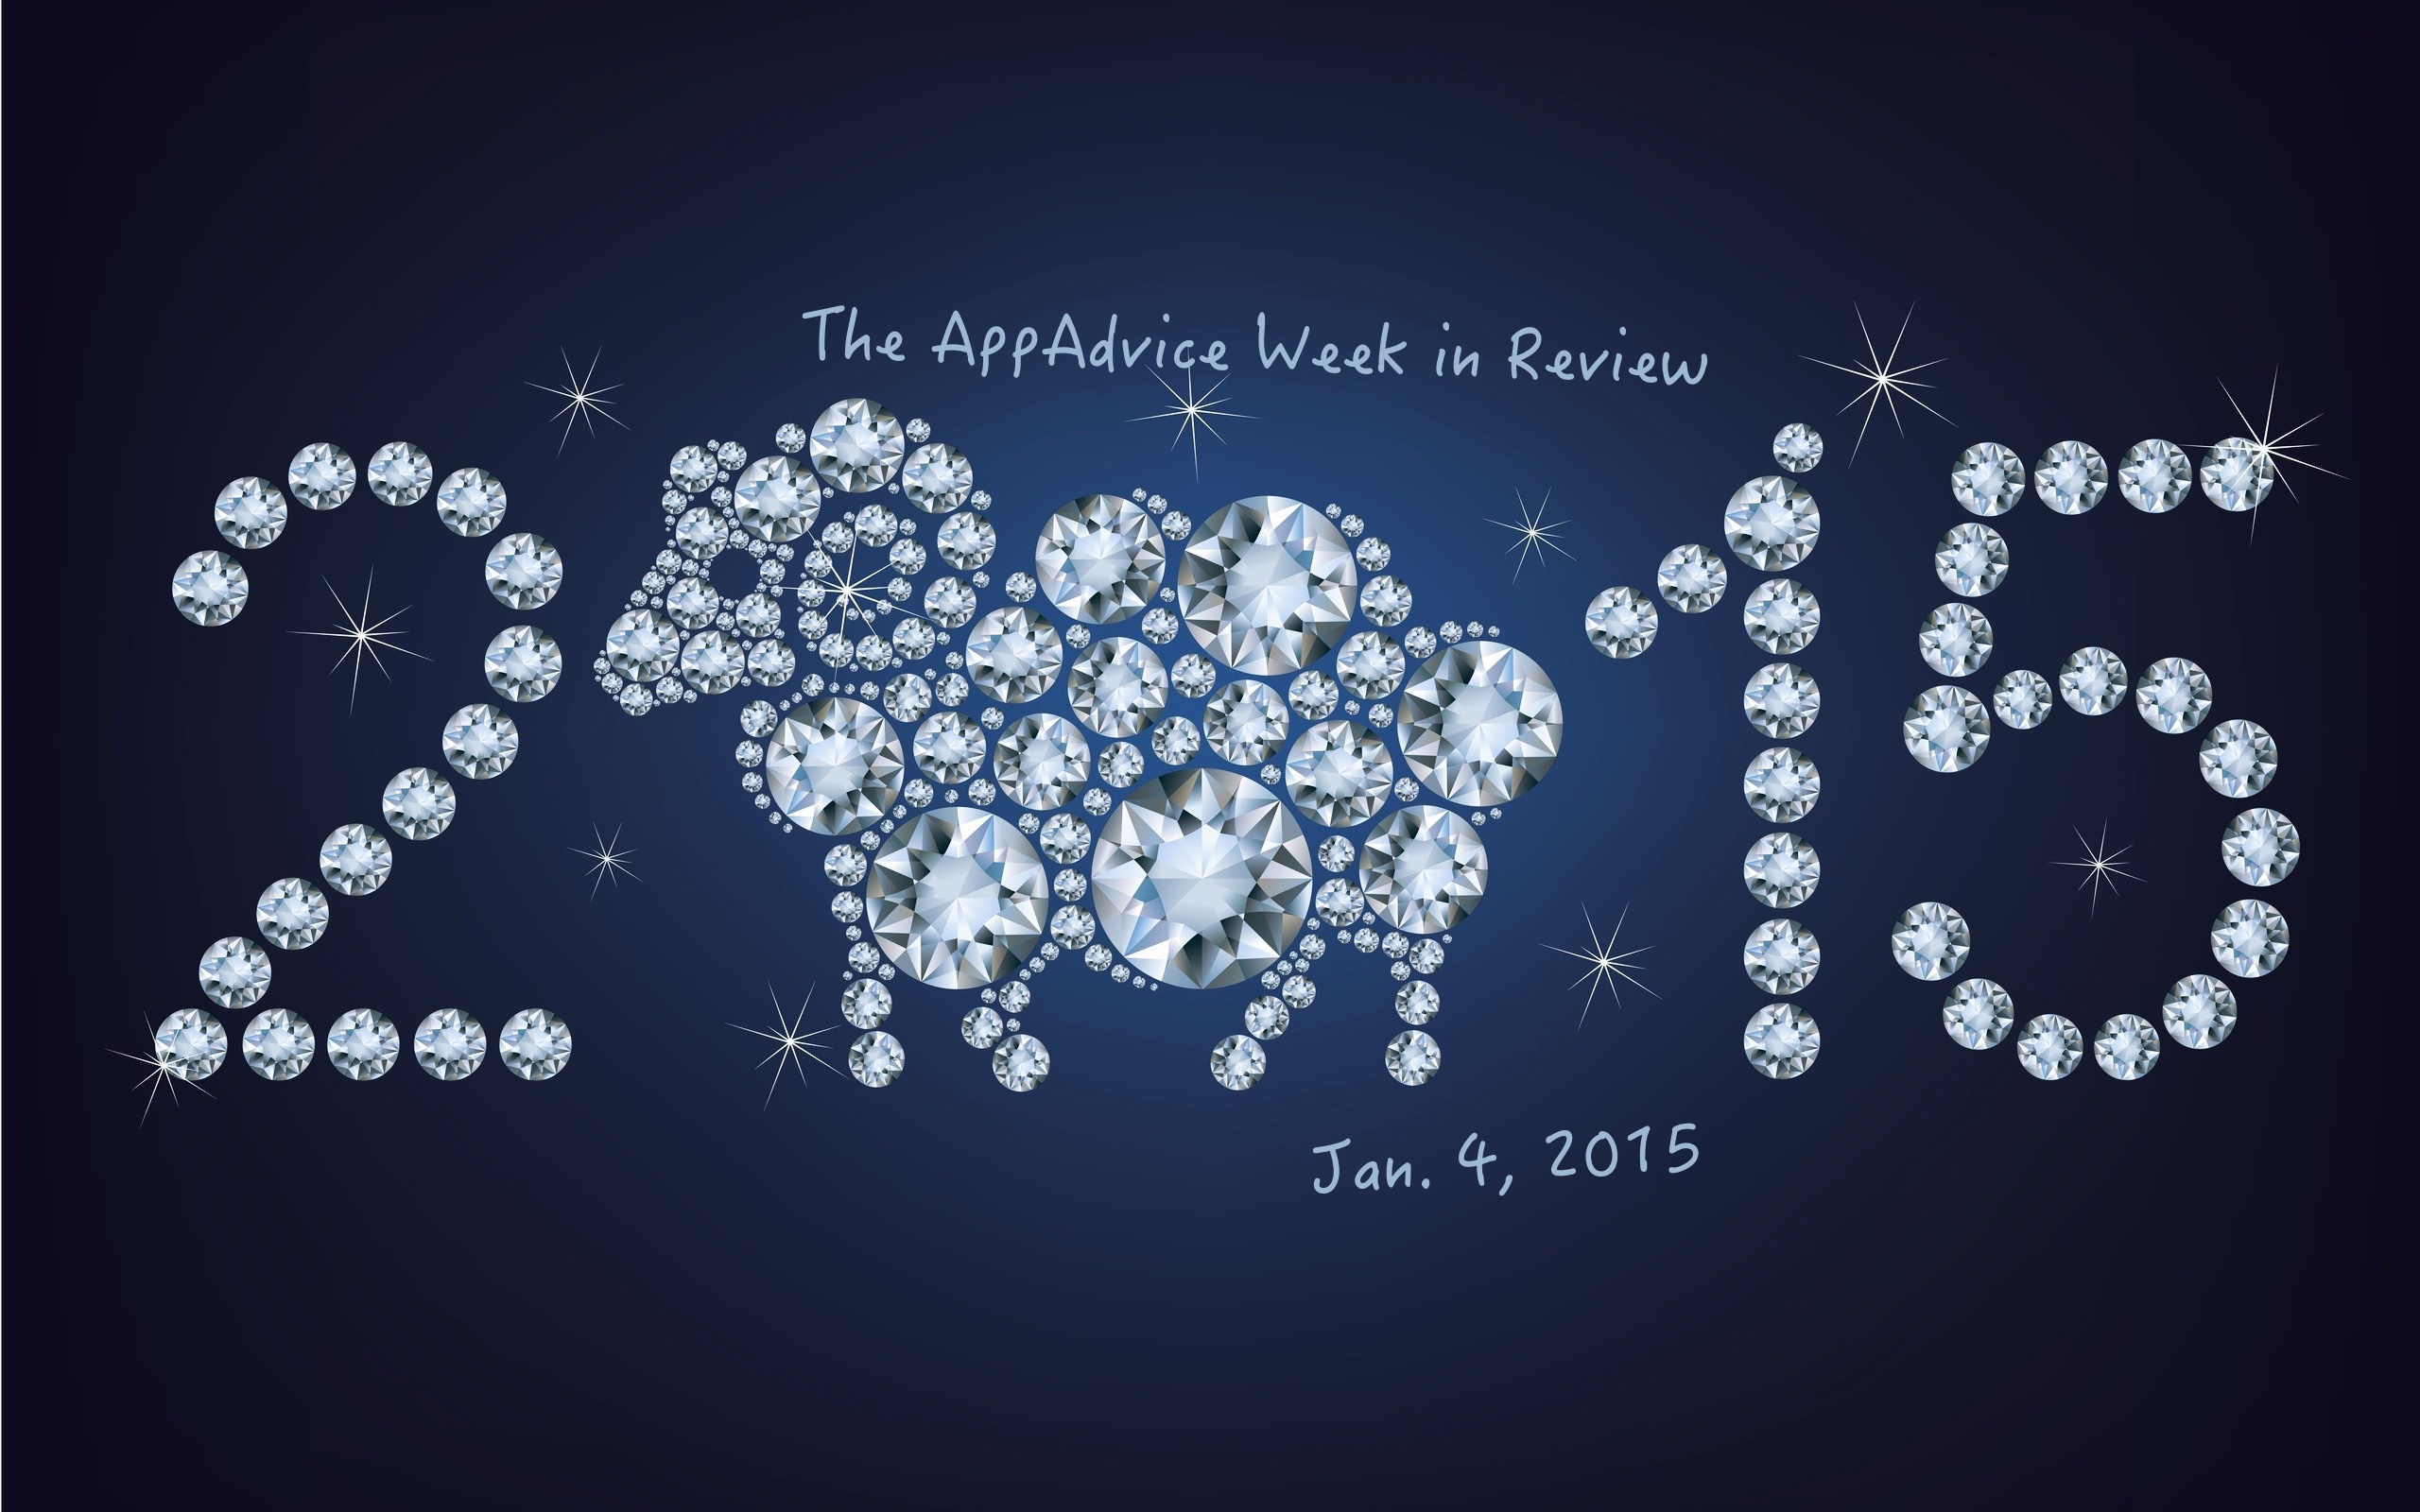 The AppAdvice week in review: Apple is ready to 'start something new'